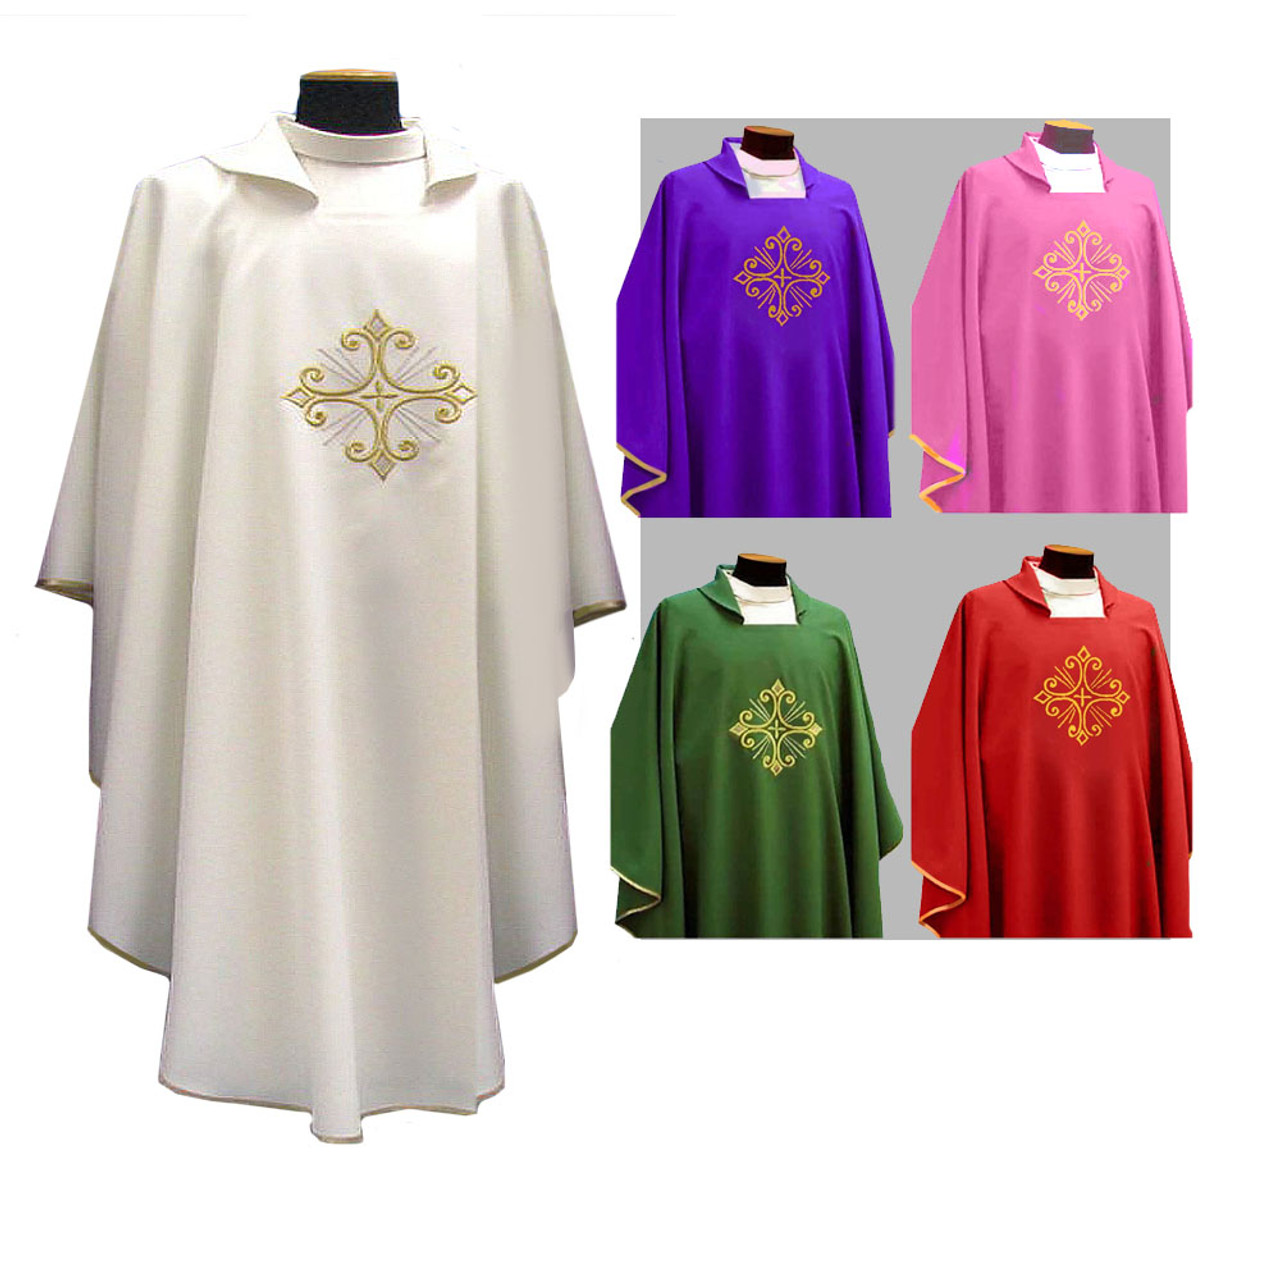 351 White Chasuble with Gold Cross from Solivari